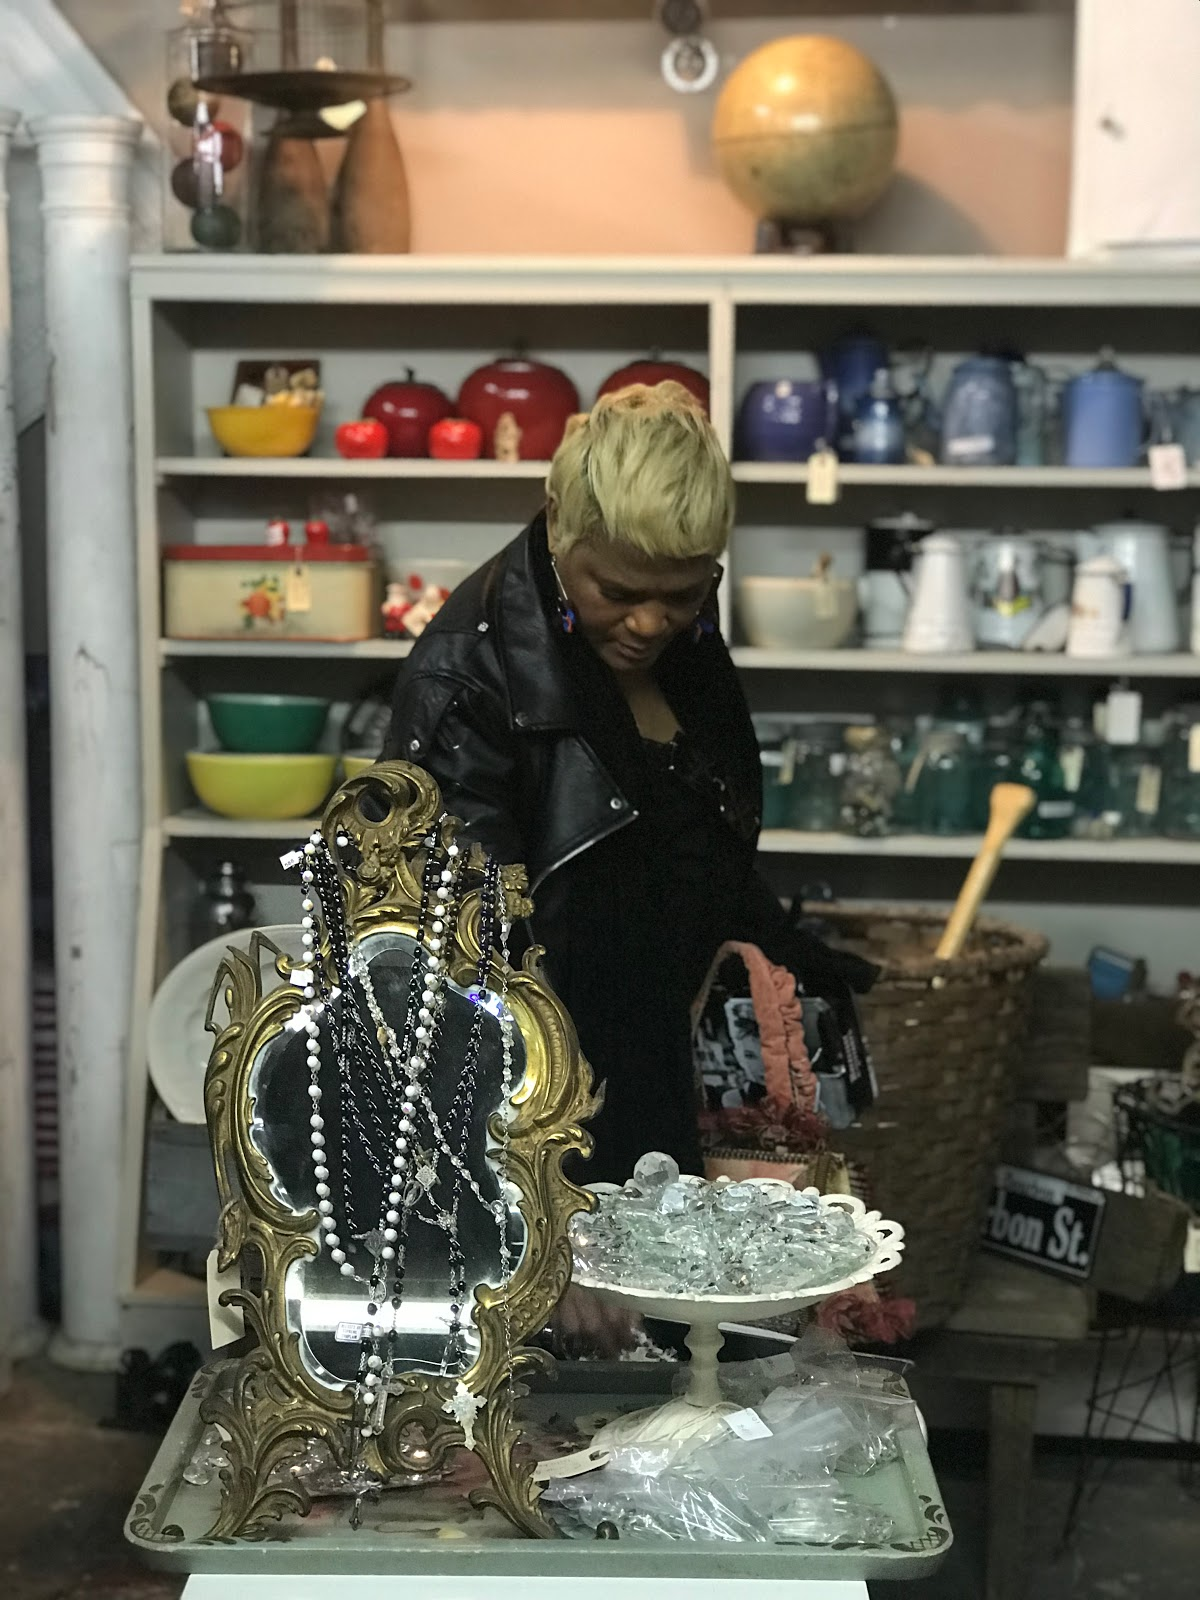 Image: Woman looking at jewelry at thrift store